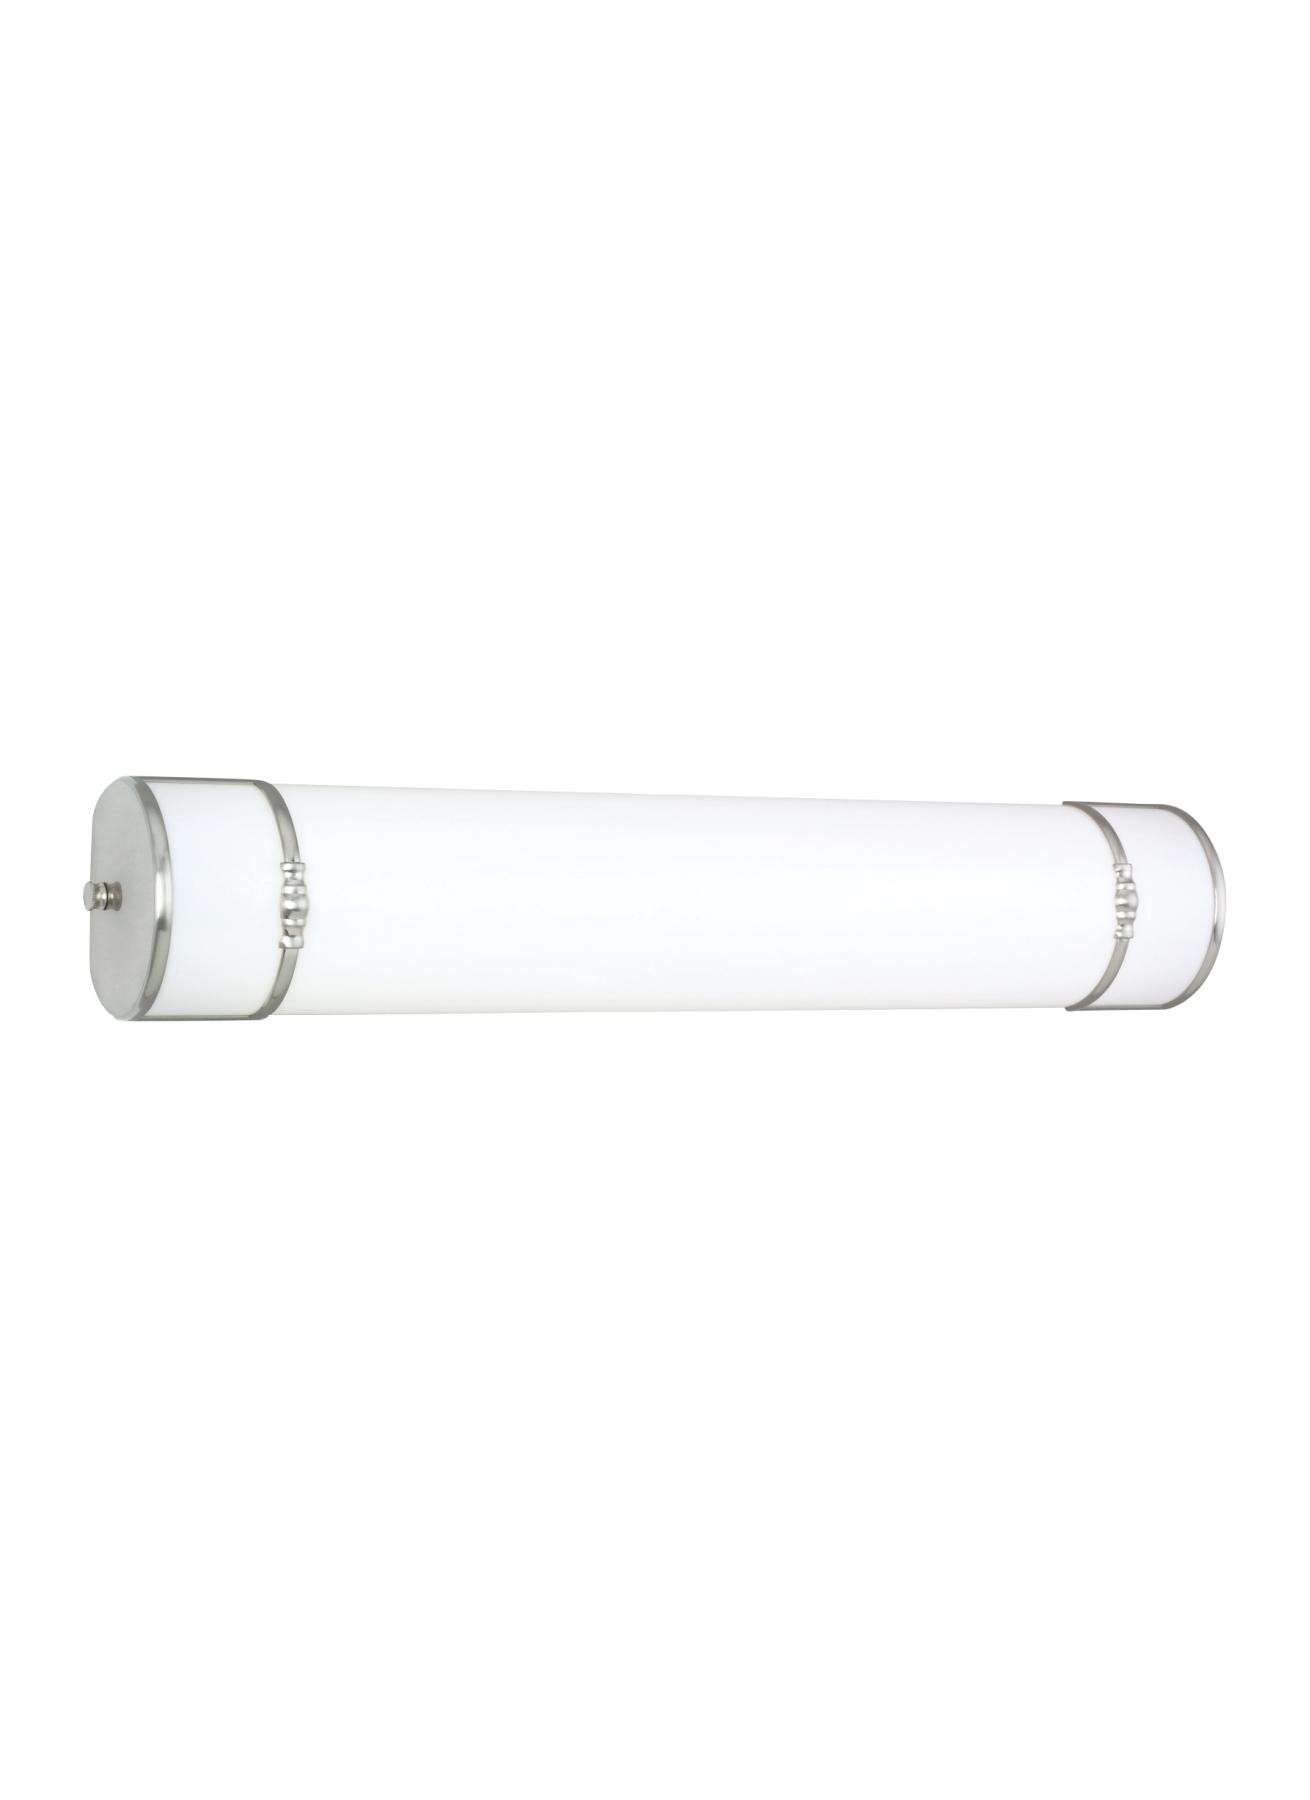 Seagull Lighting 49215BLE-962 Two-Light Balmoral Fluorescent in Brushed Nickel finish; ENERGYSTAR Compliant